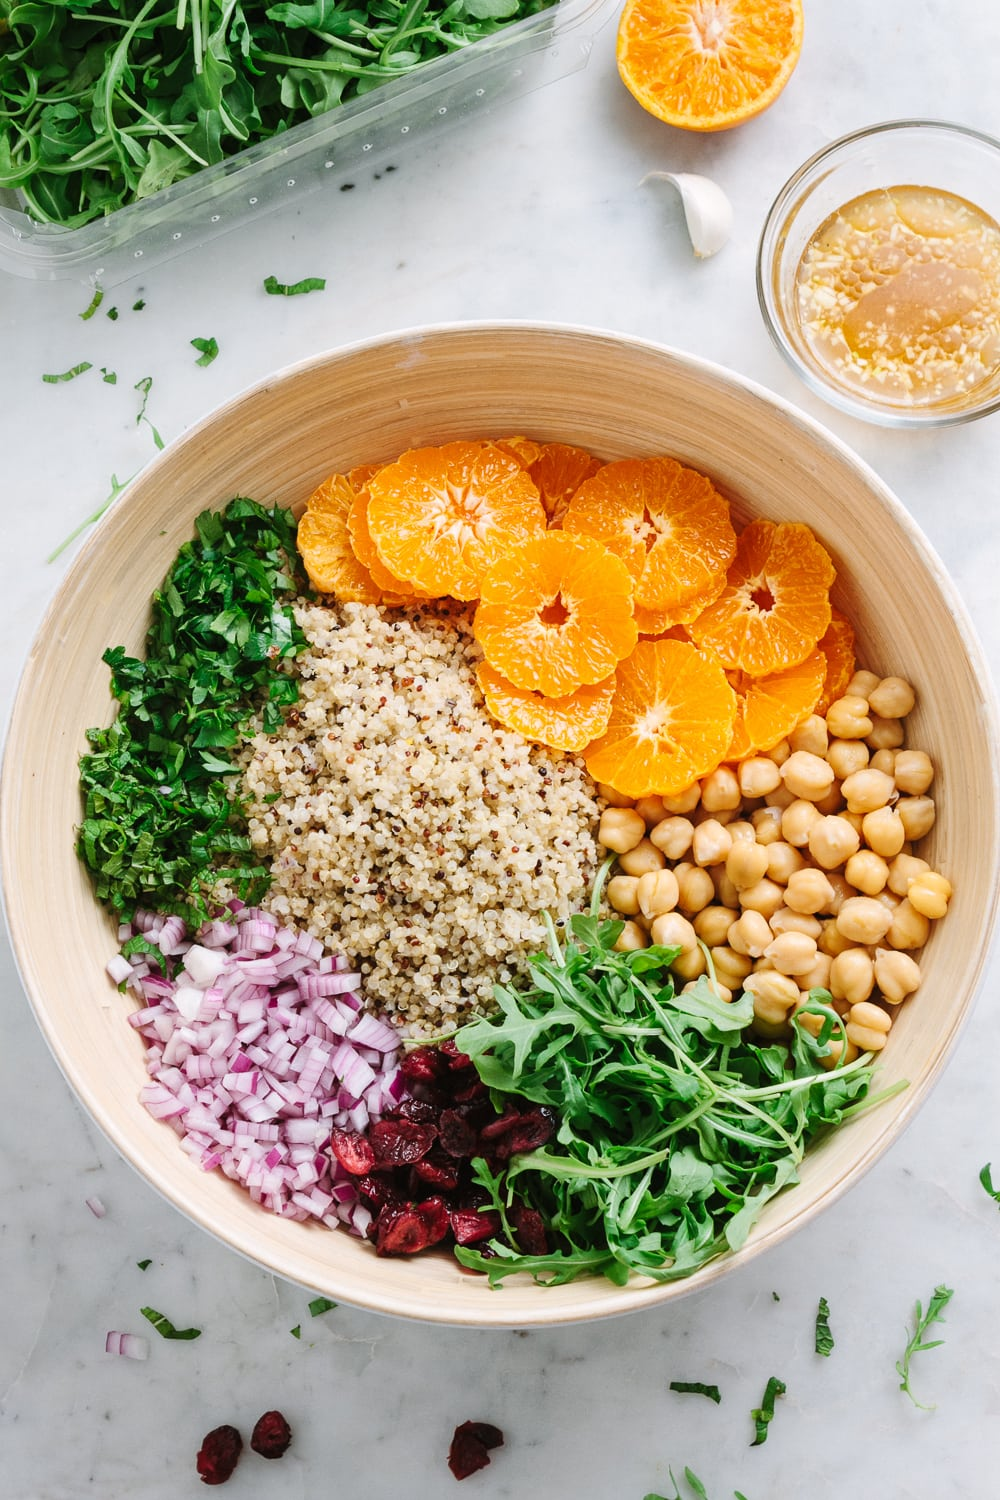 top down view of large bamboo mixing bowl filled with salad ingredients and ready to have dressing poured overtop and tossed.